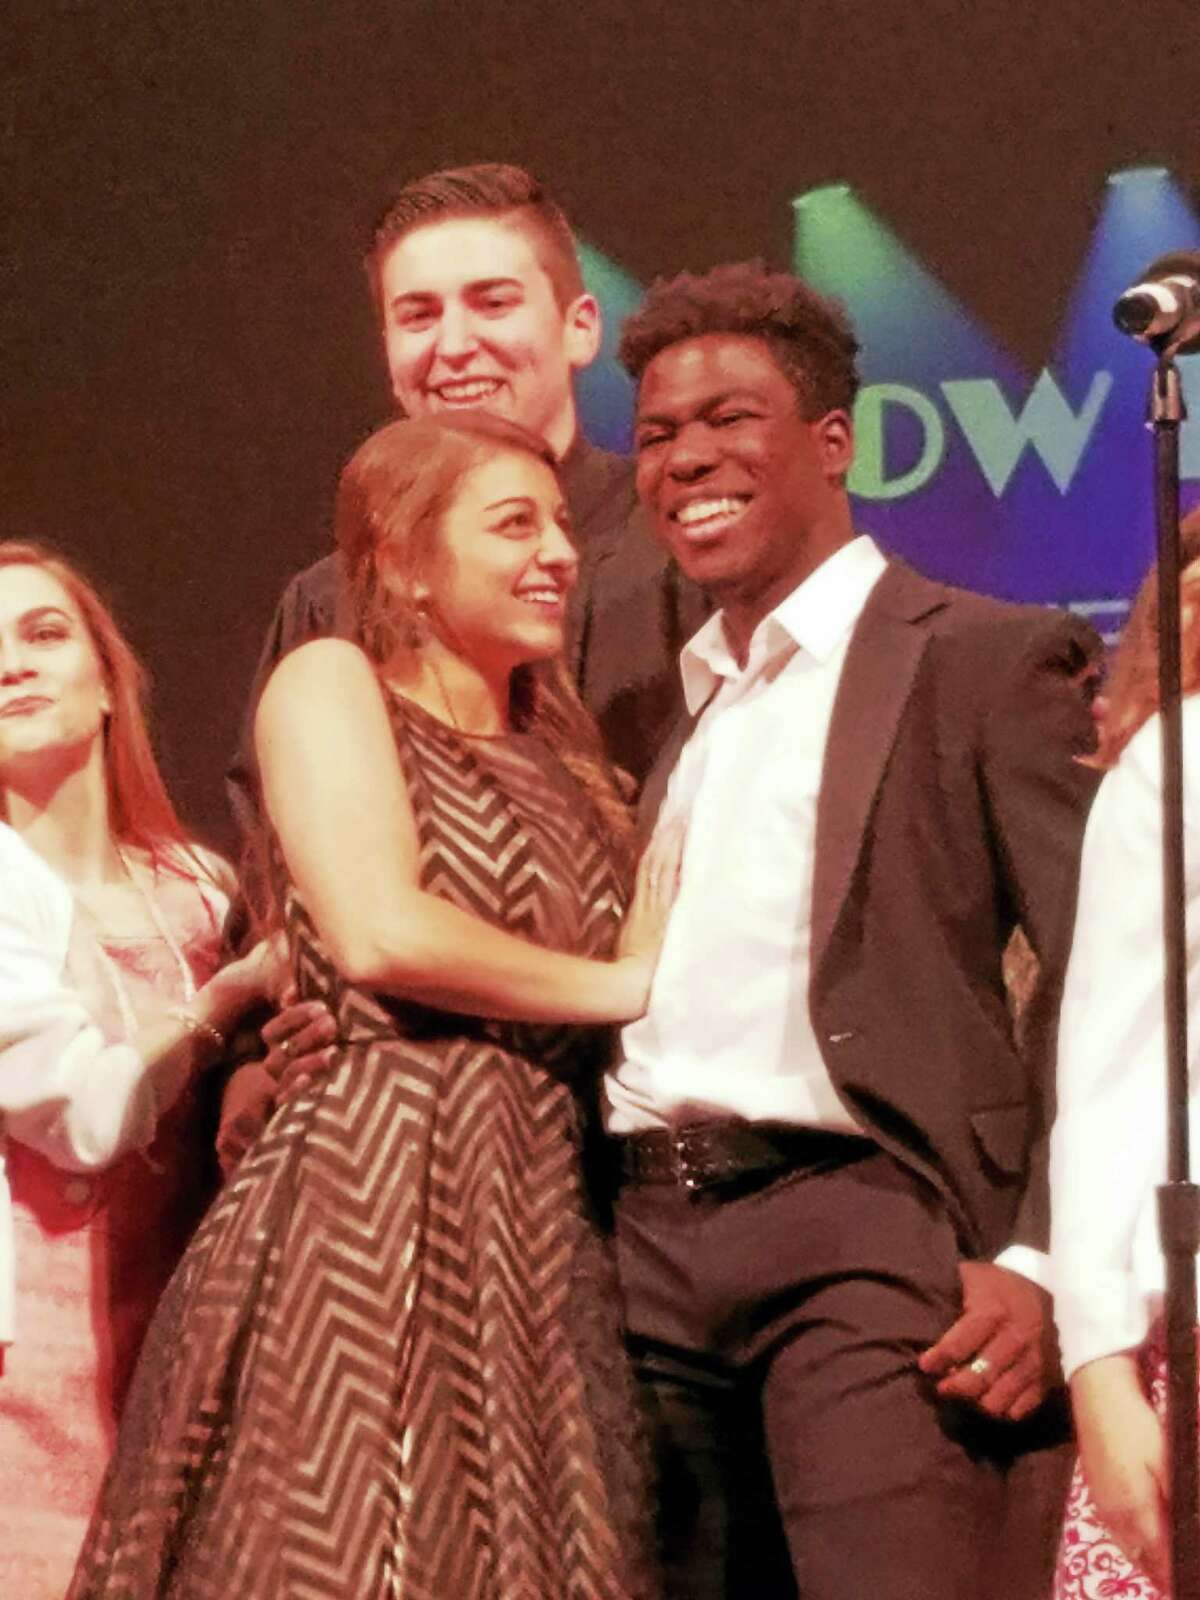 """Torrington High School students Ali Bottari and Will Wilson held the roles of Ariel and Ren in the school's production of """"Footloose."""" Wilson received an award for his role in the show."""